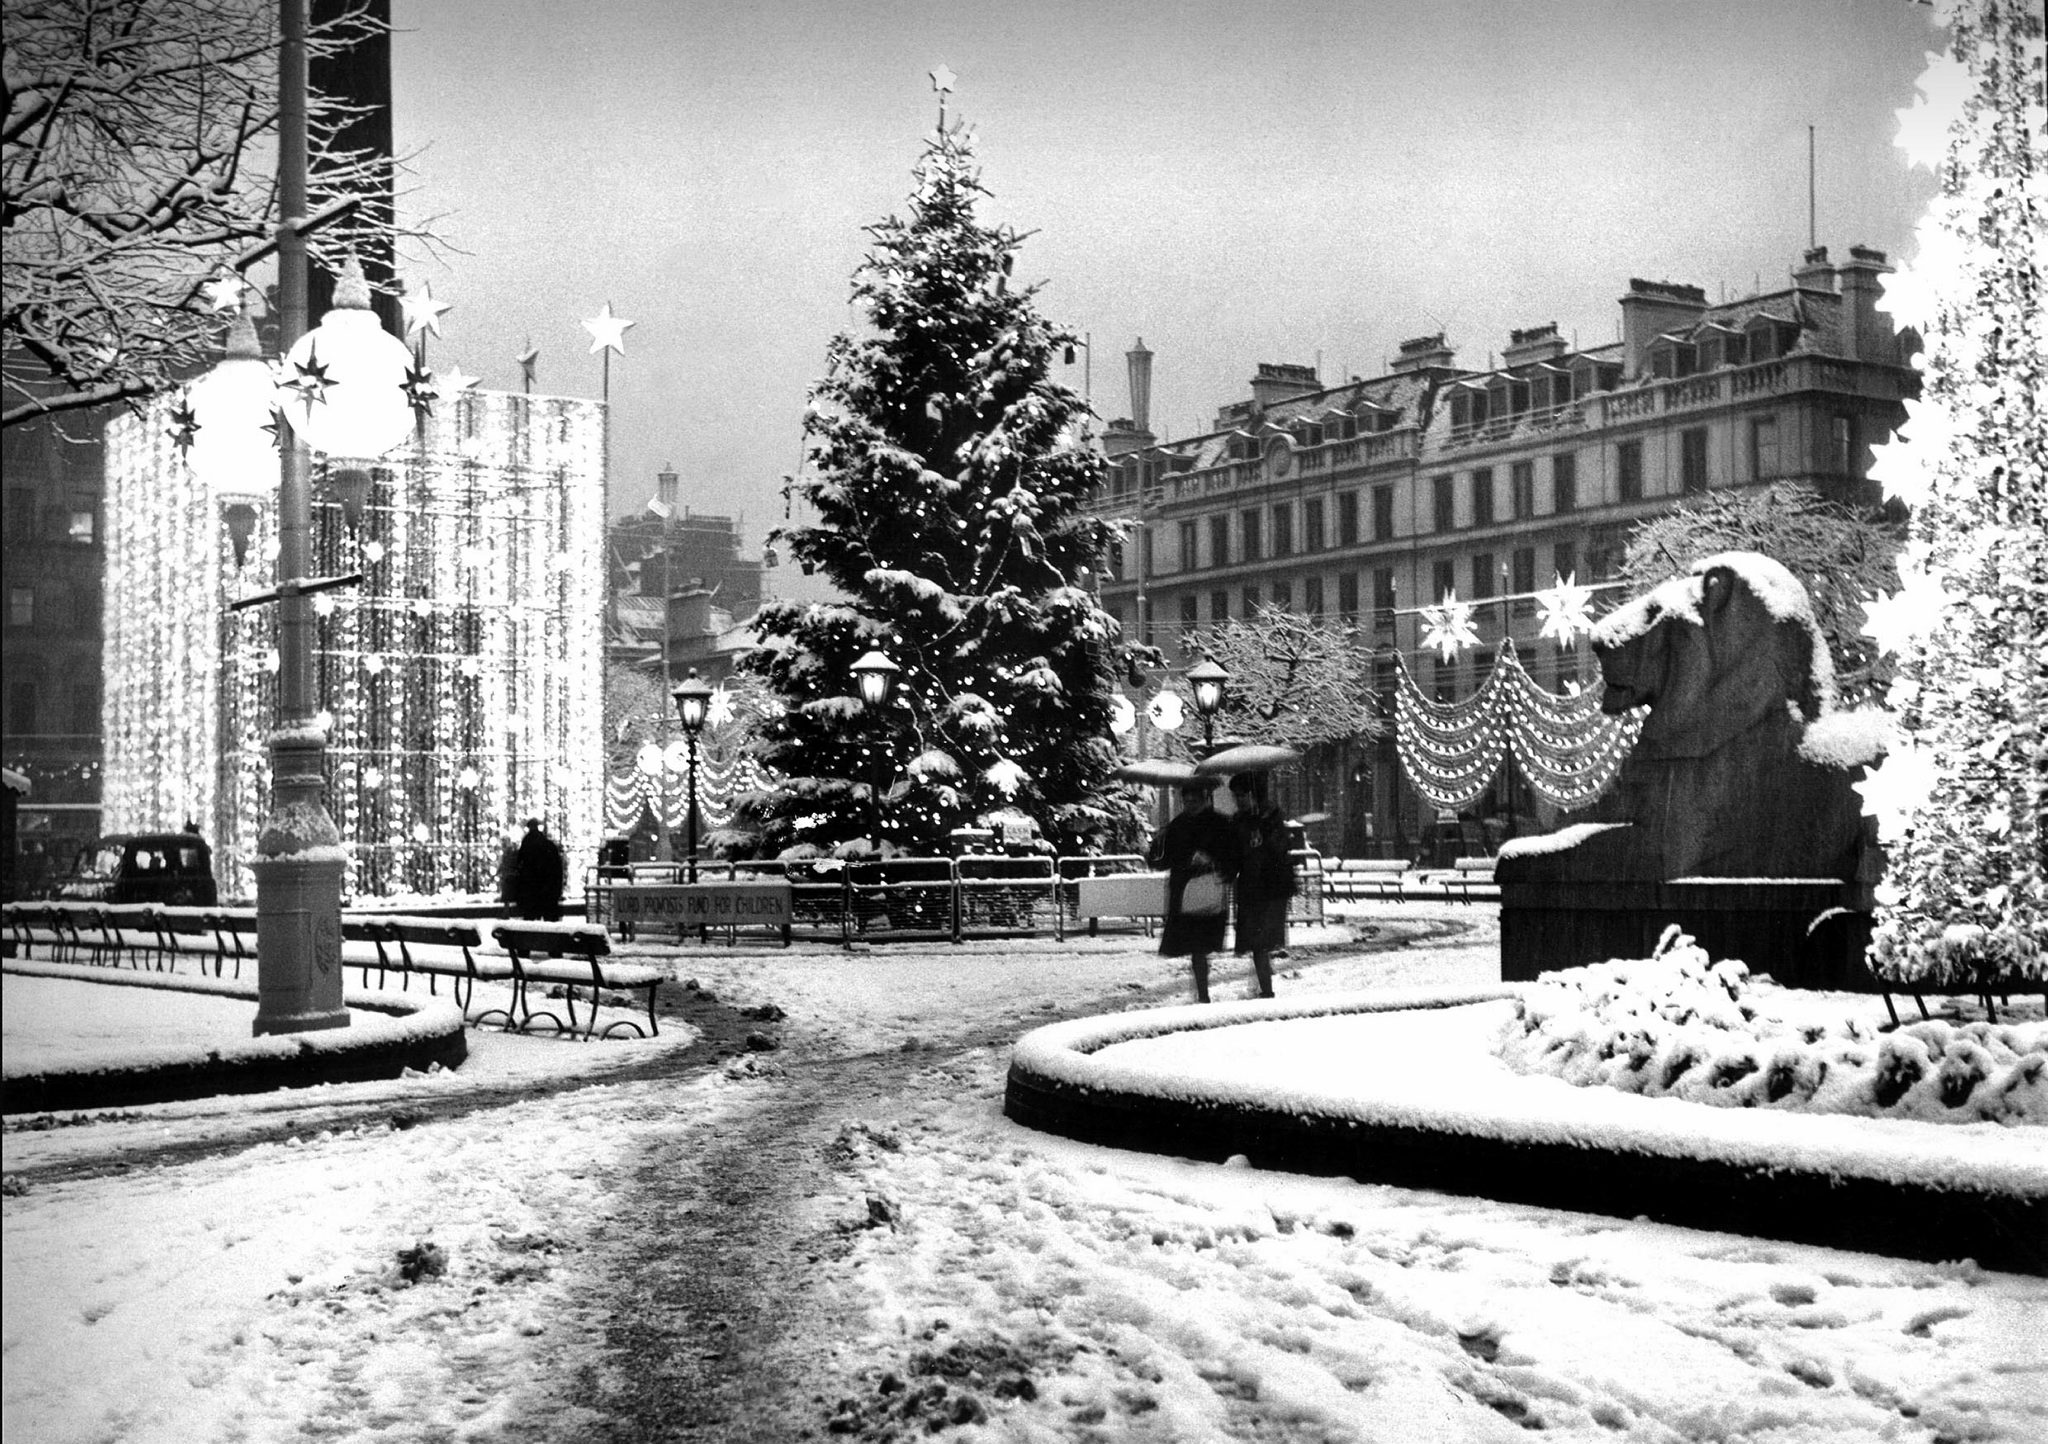 Are you in the Christmas spirit yet? These stunning old photos of ...